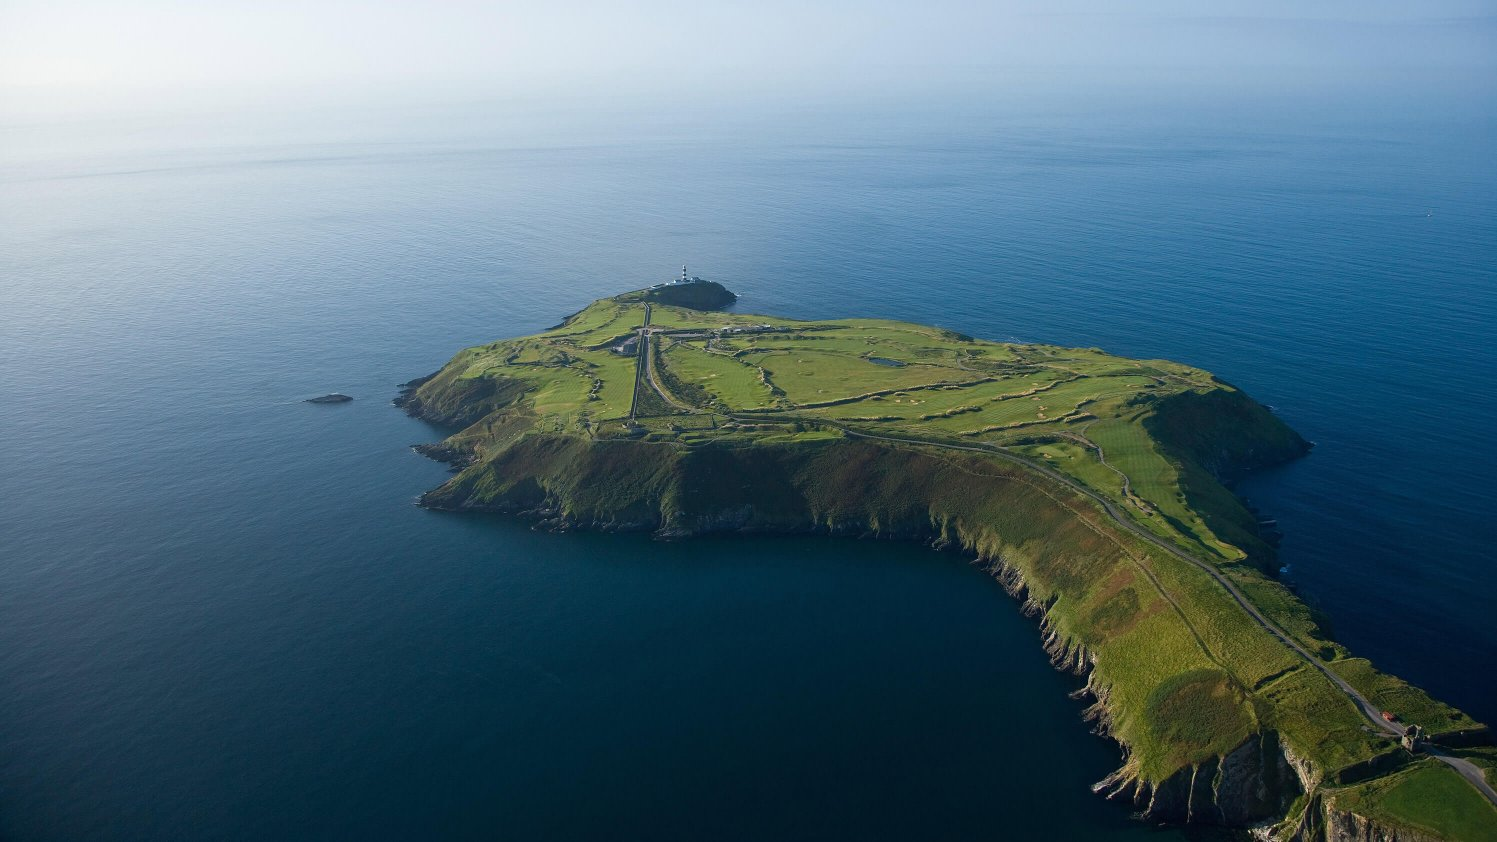 The Old Head of Kinsale, with lighthouse and golf course